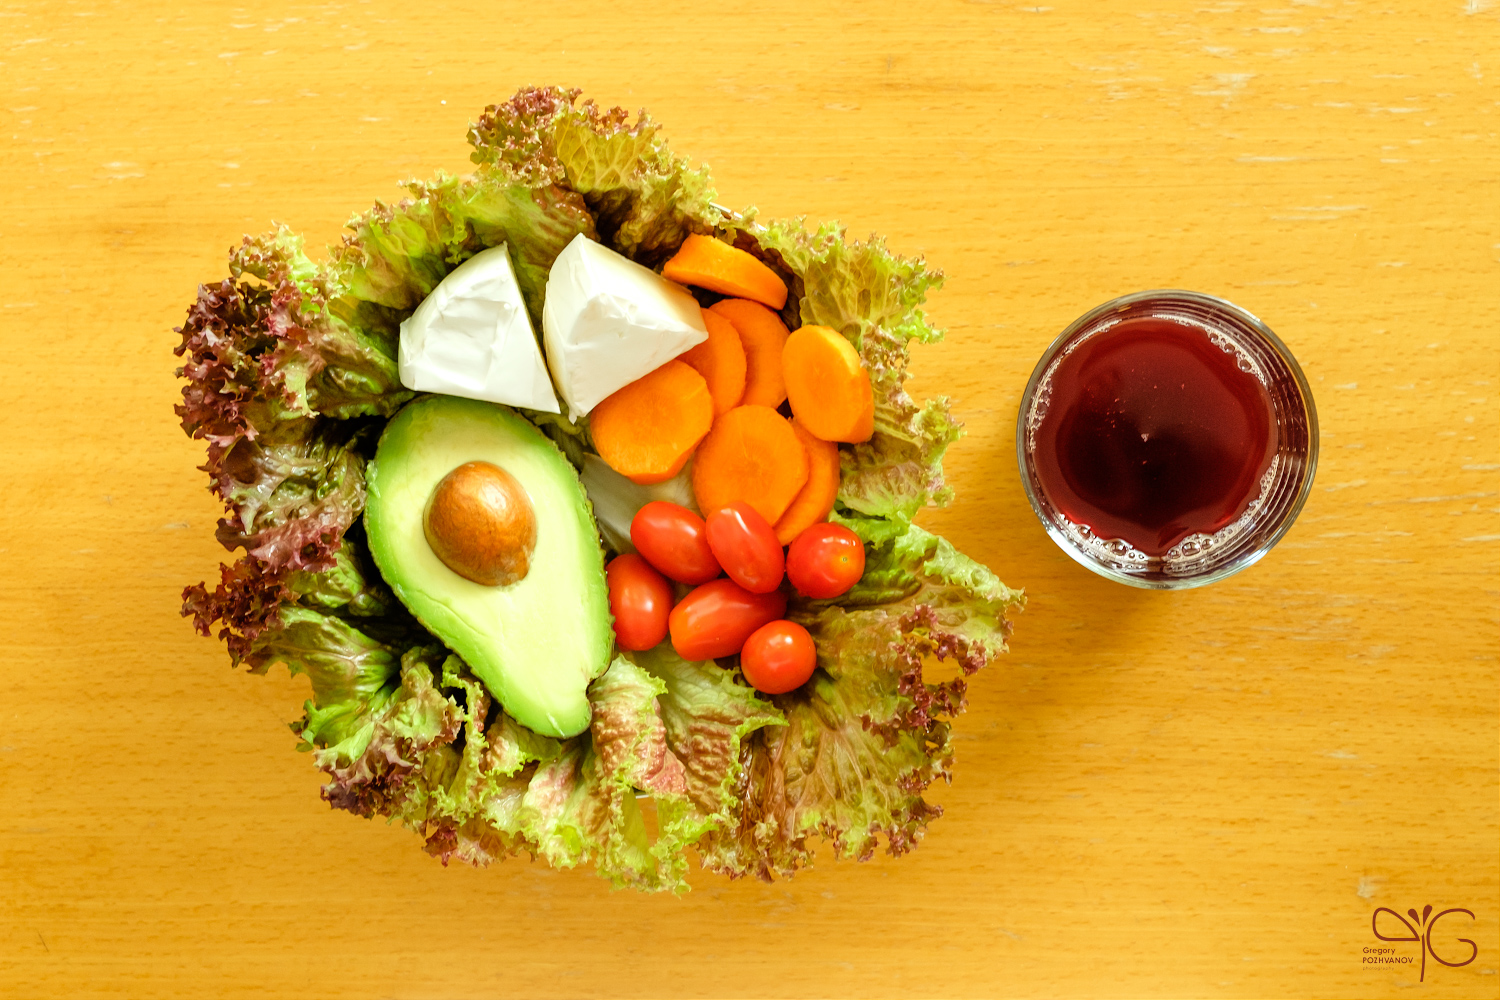 Vegetarian lunch meal served on a dish with glass of grape juice, containing salad leaves, camembert cheese, avocado, carrot and cherry roma tomatoes